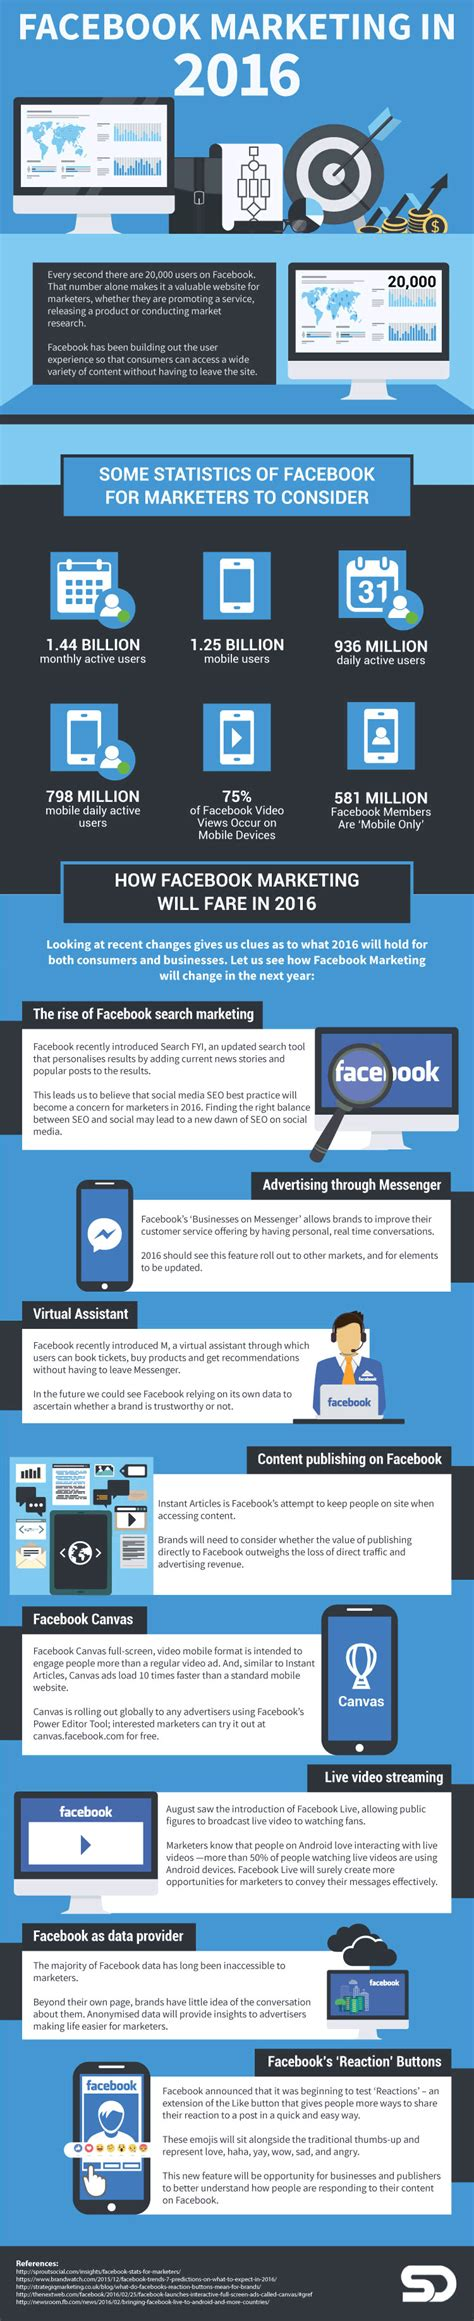 fb marketing how facebook marketing is changing in 2016 infographic